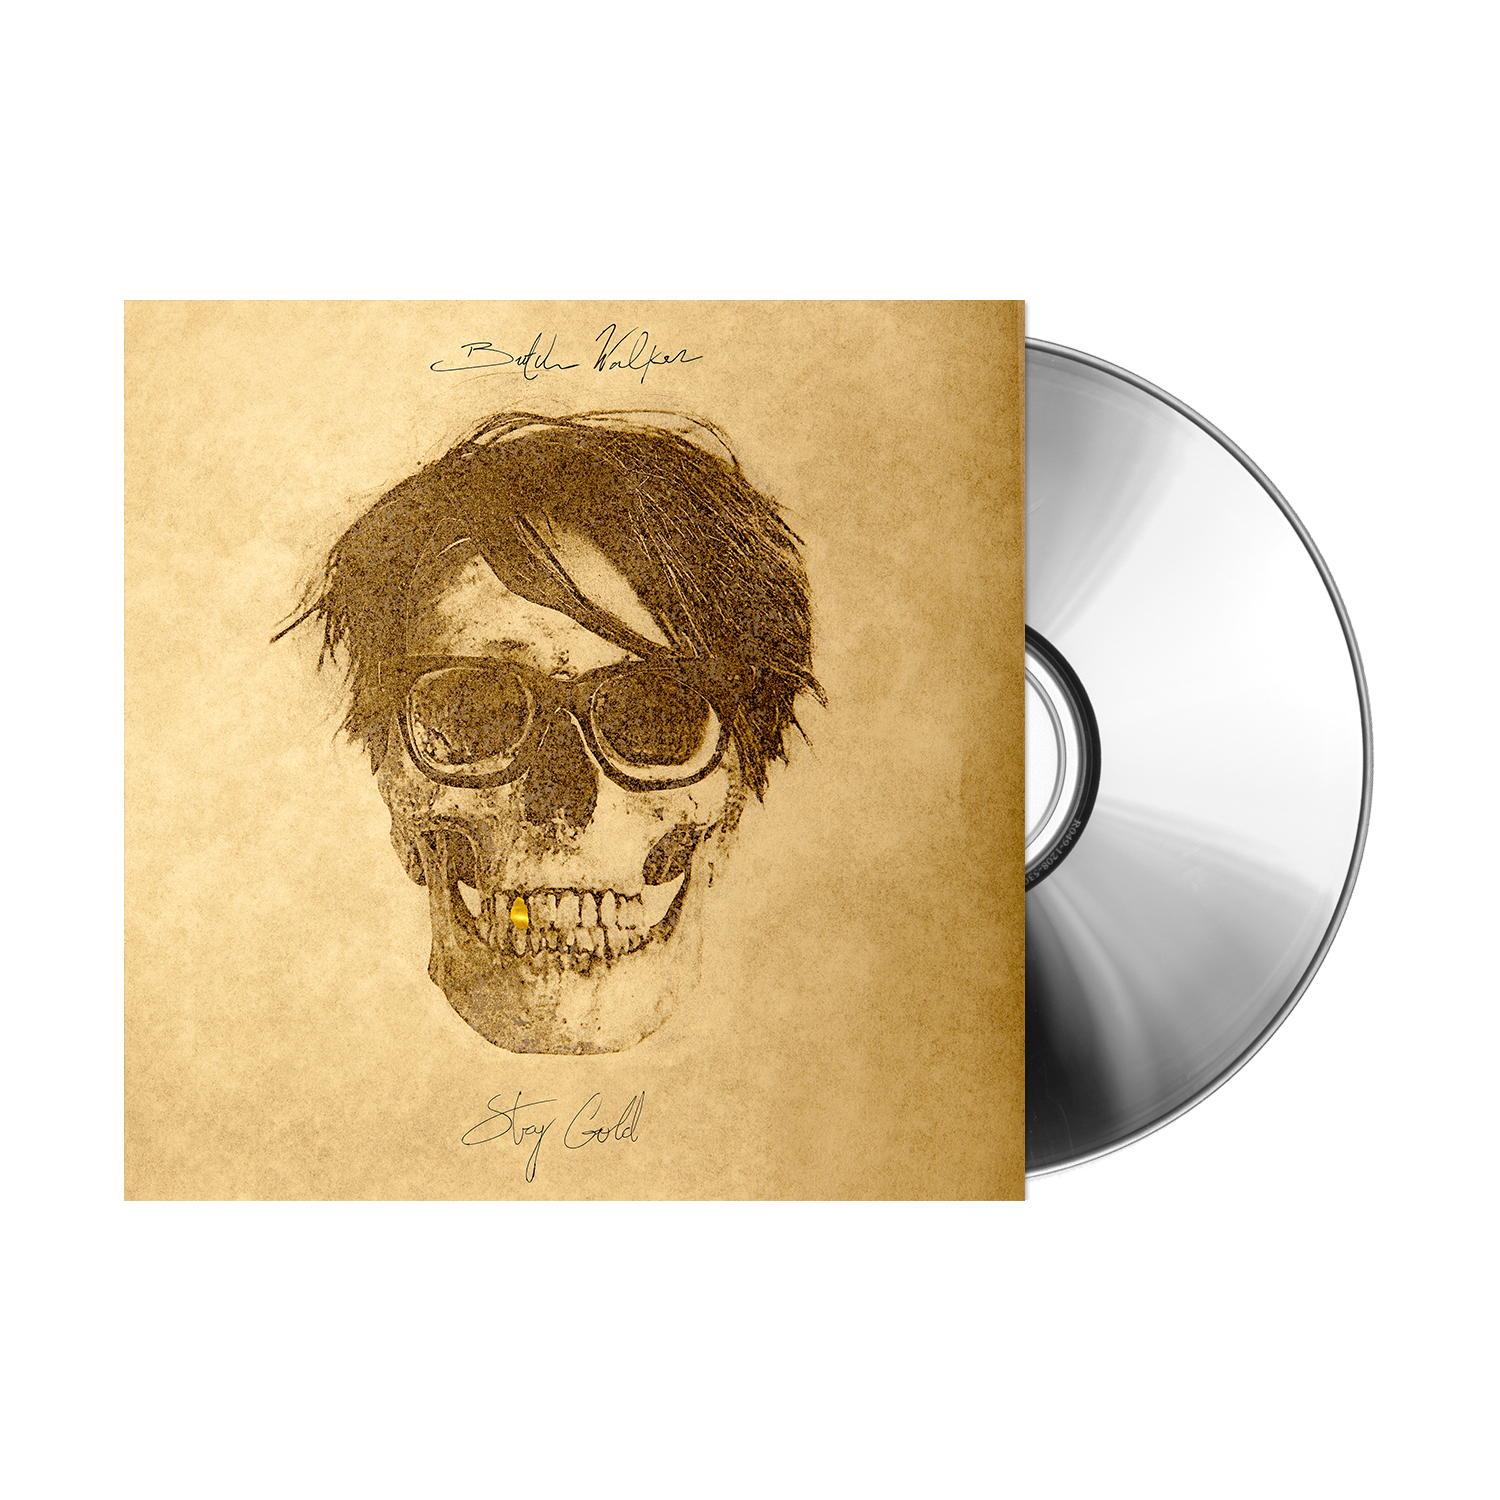 Butch Walker - Stay Gold - CD